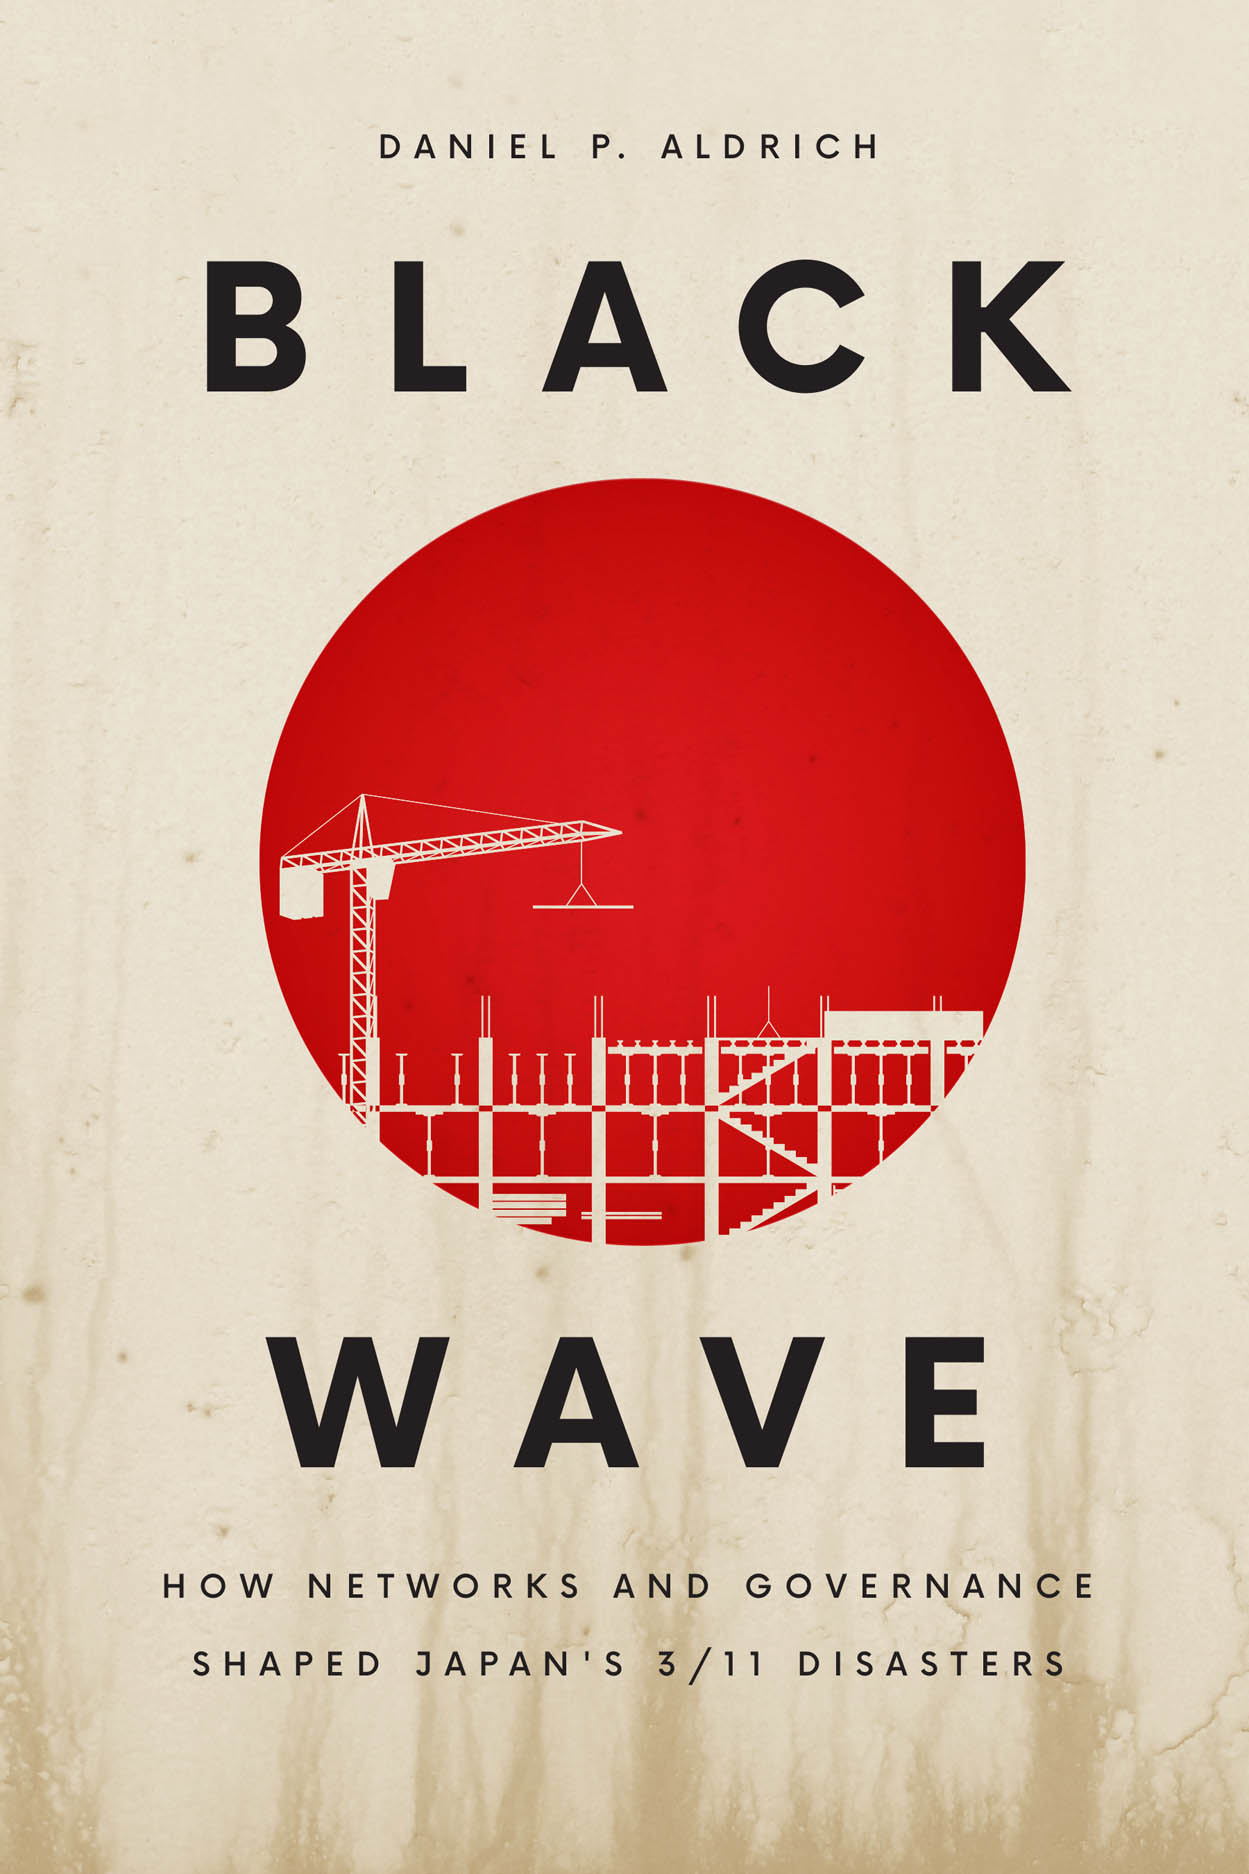 Black Wave: How Networks and Governance Shaped Japan's 3/11 Disasters